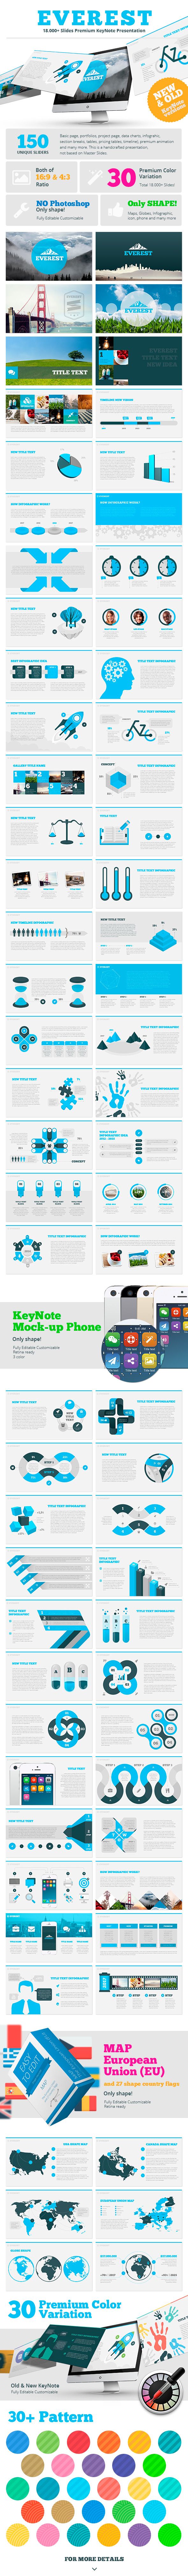 Everest KeyNote - Keynote Templates Presentation Templates